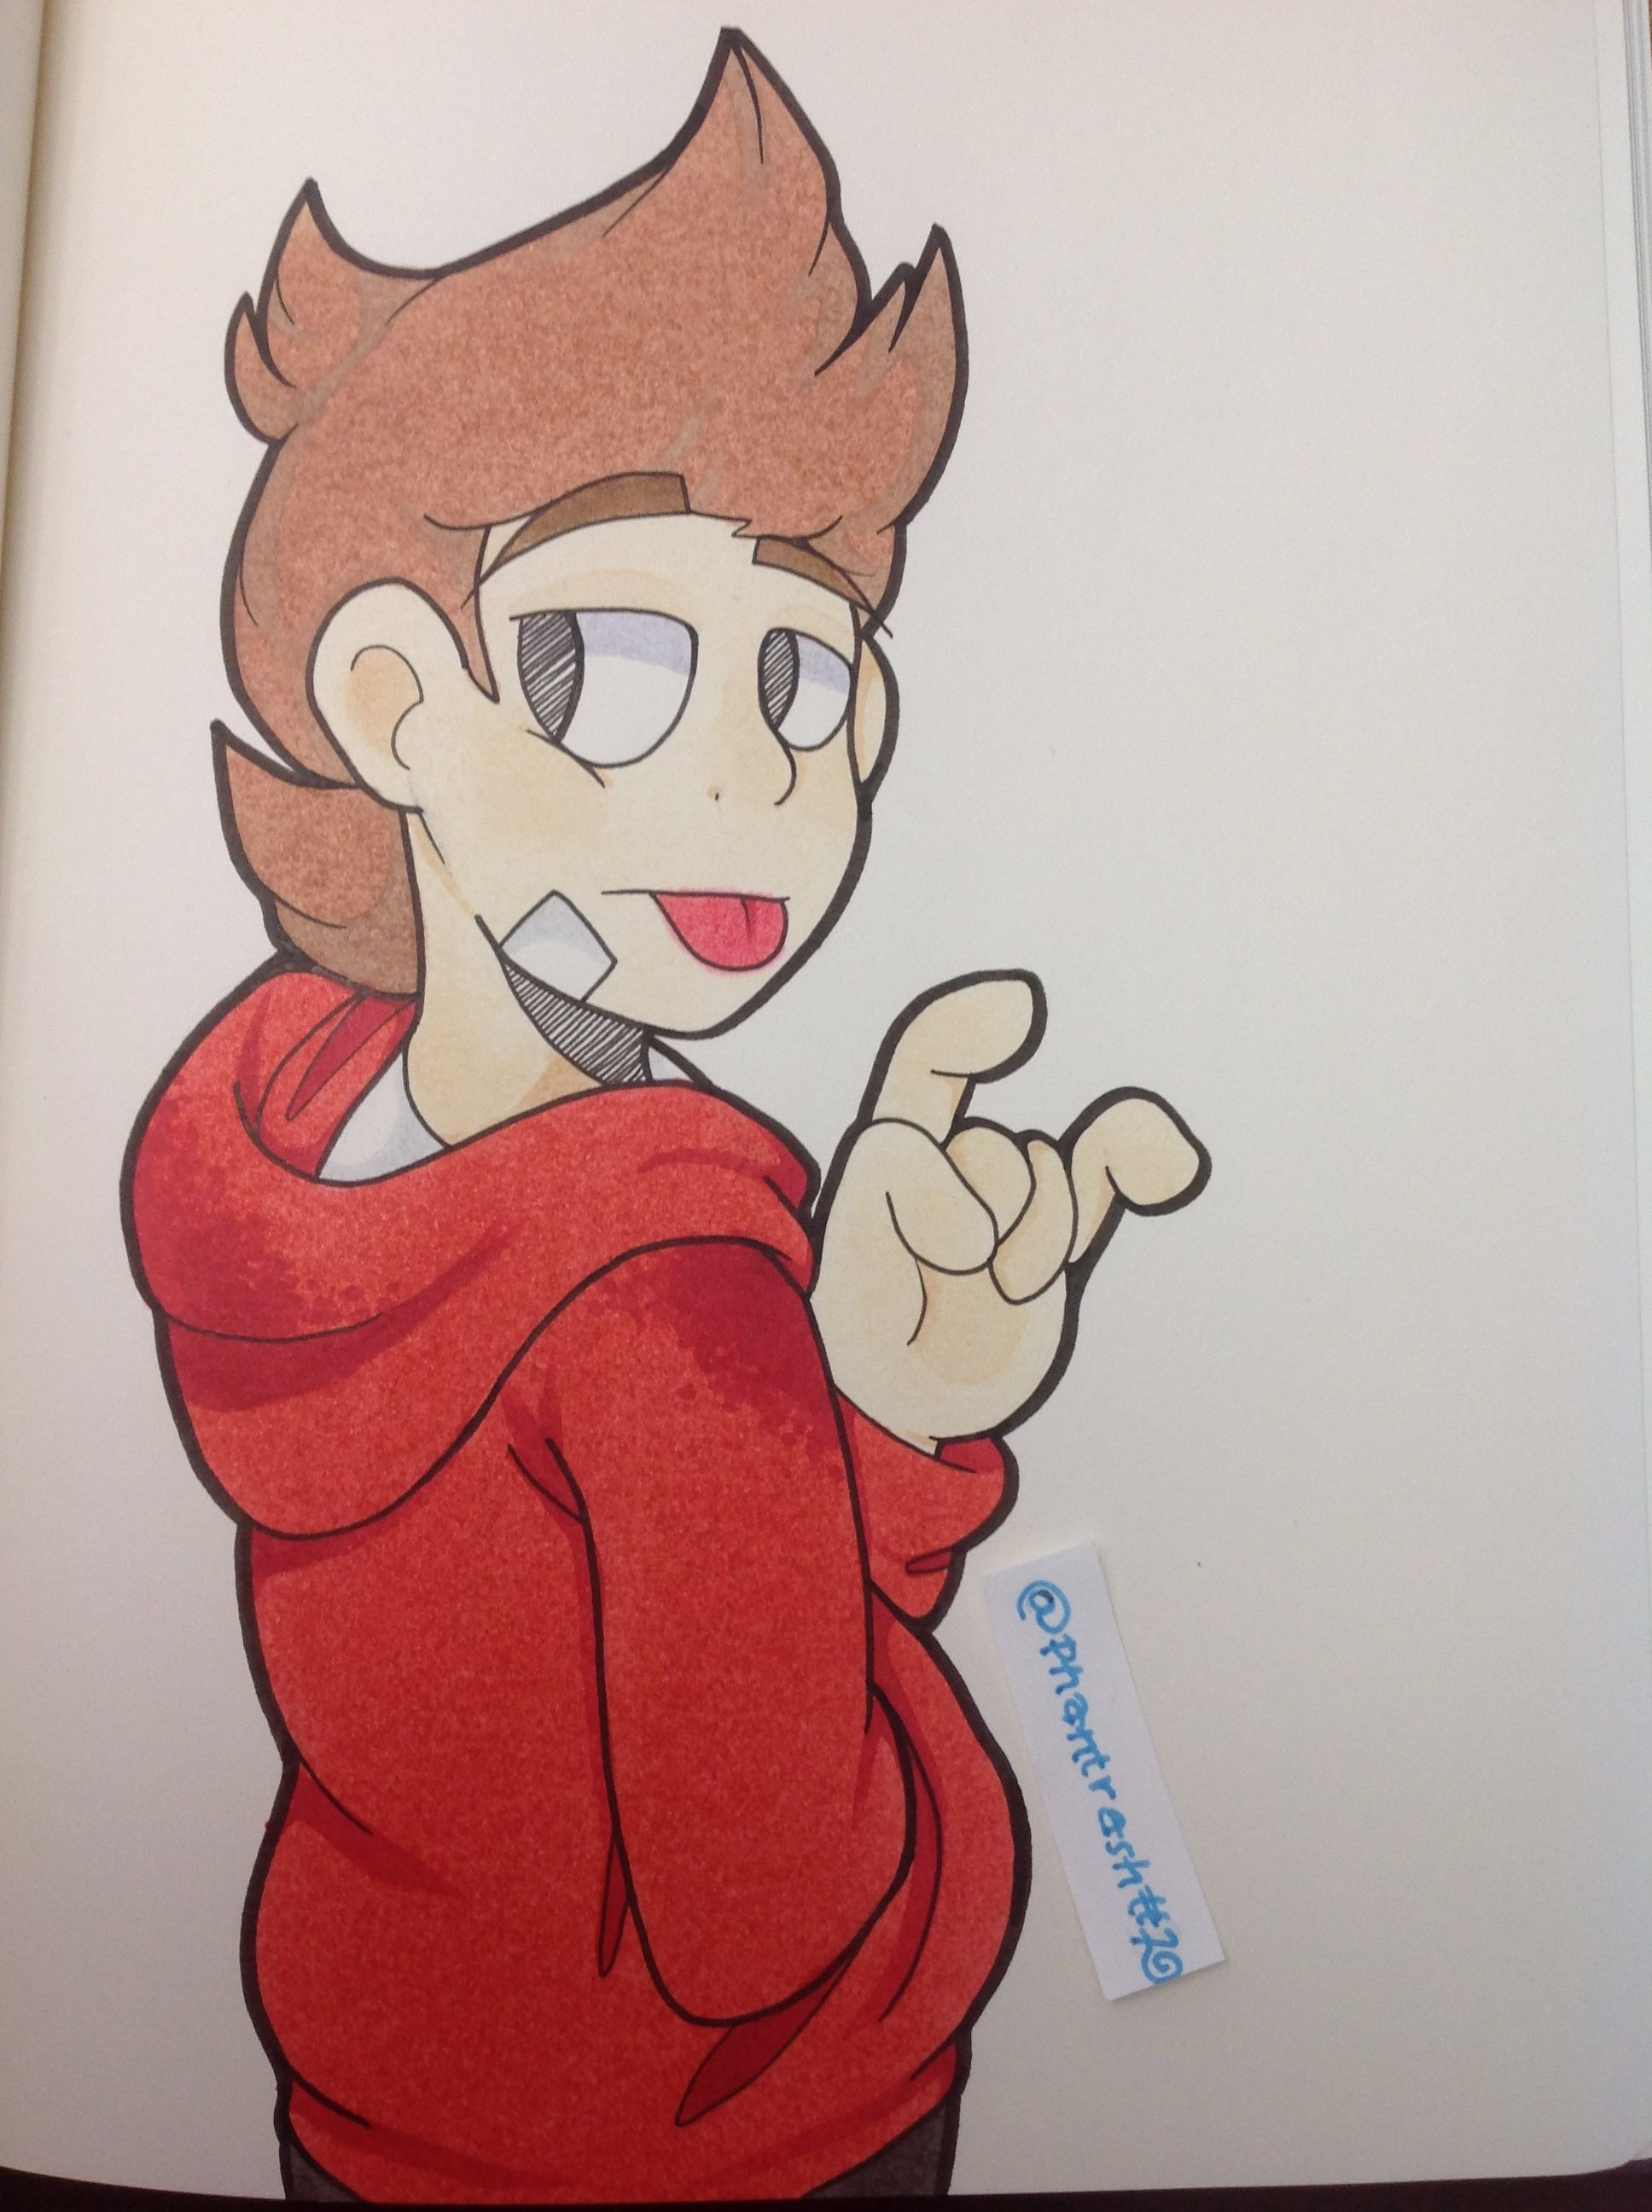 Tord from Eddsworld, I'm most likely going to be drawing a lot more